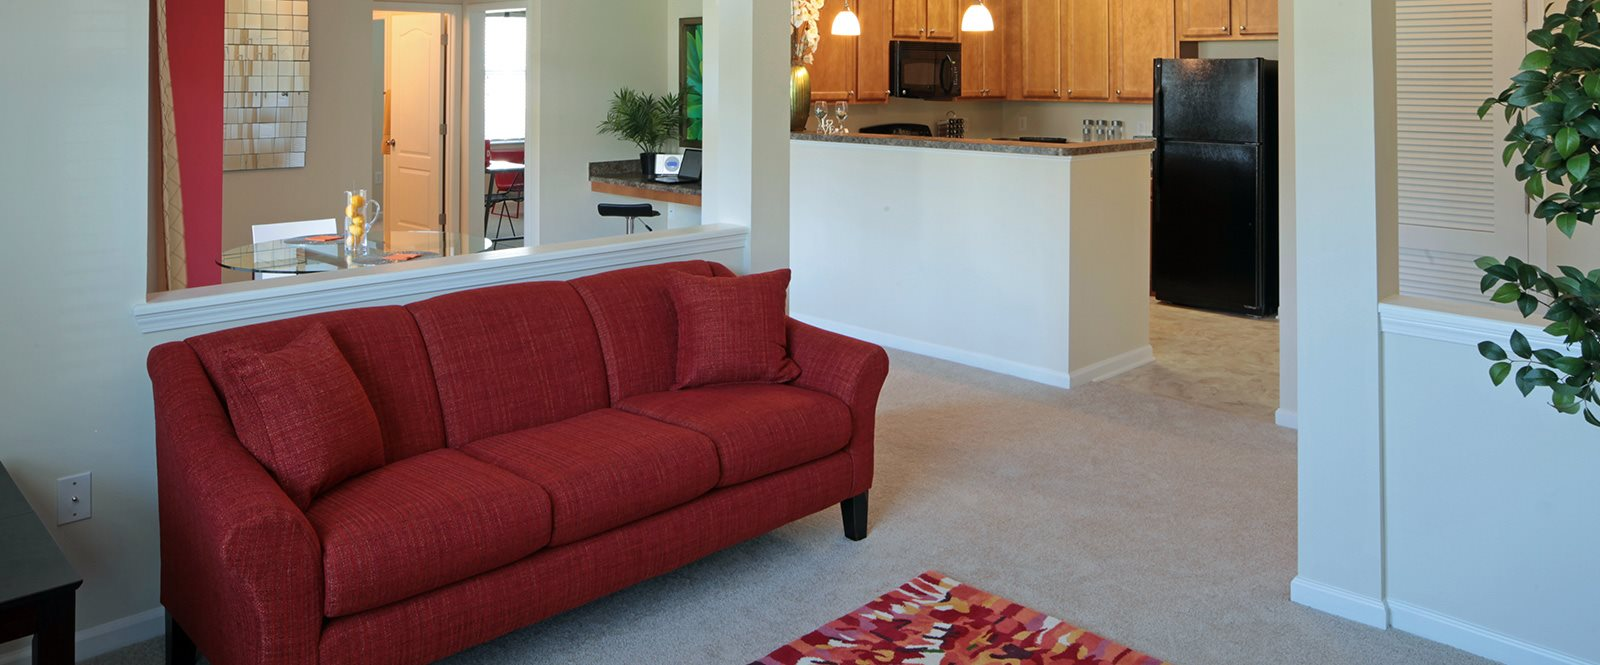 Modern Furniture at Abberly Village Apartment Homes, West Columbia, SC, 29169